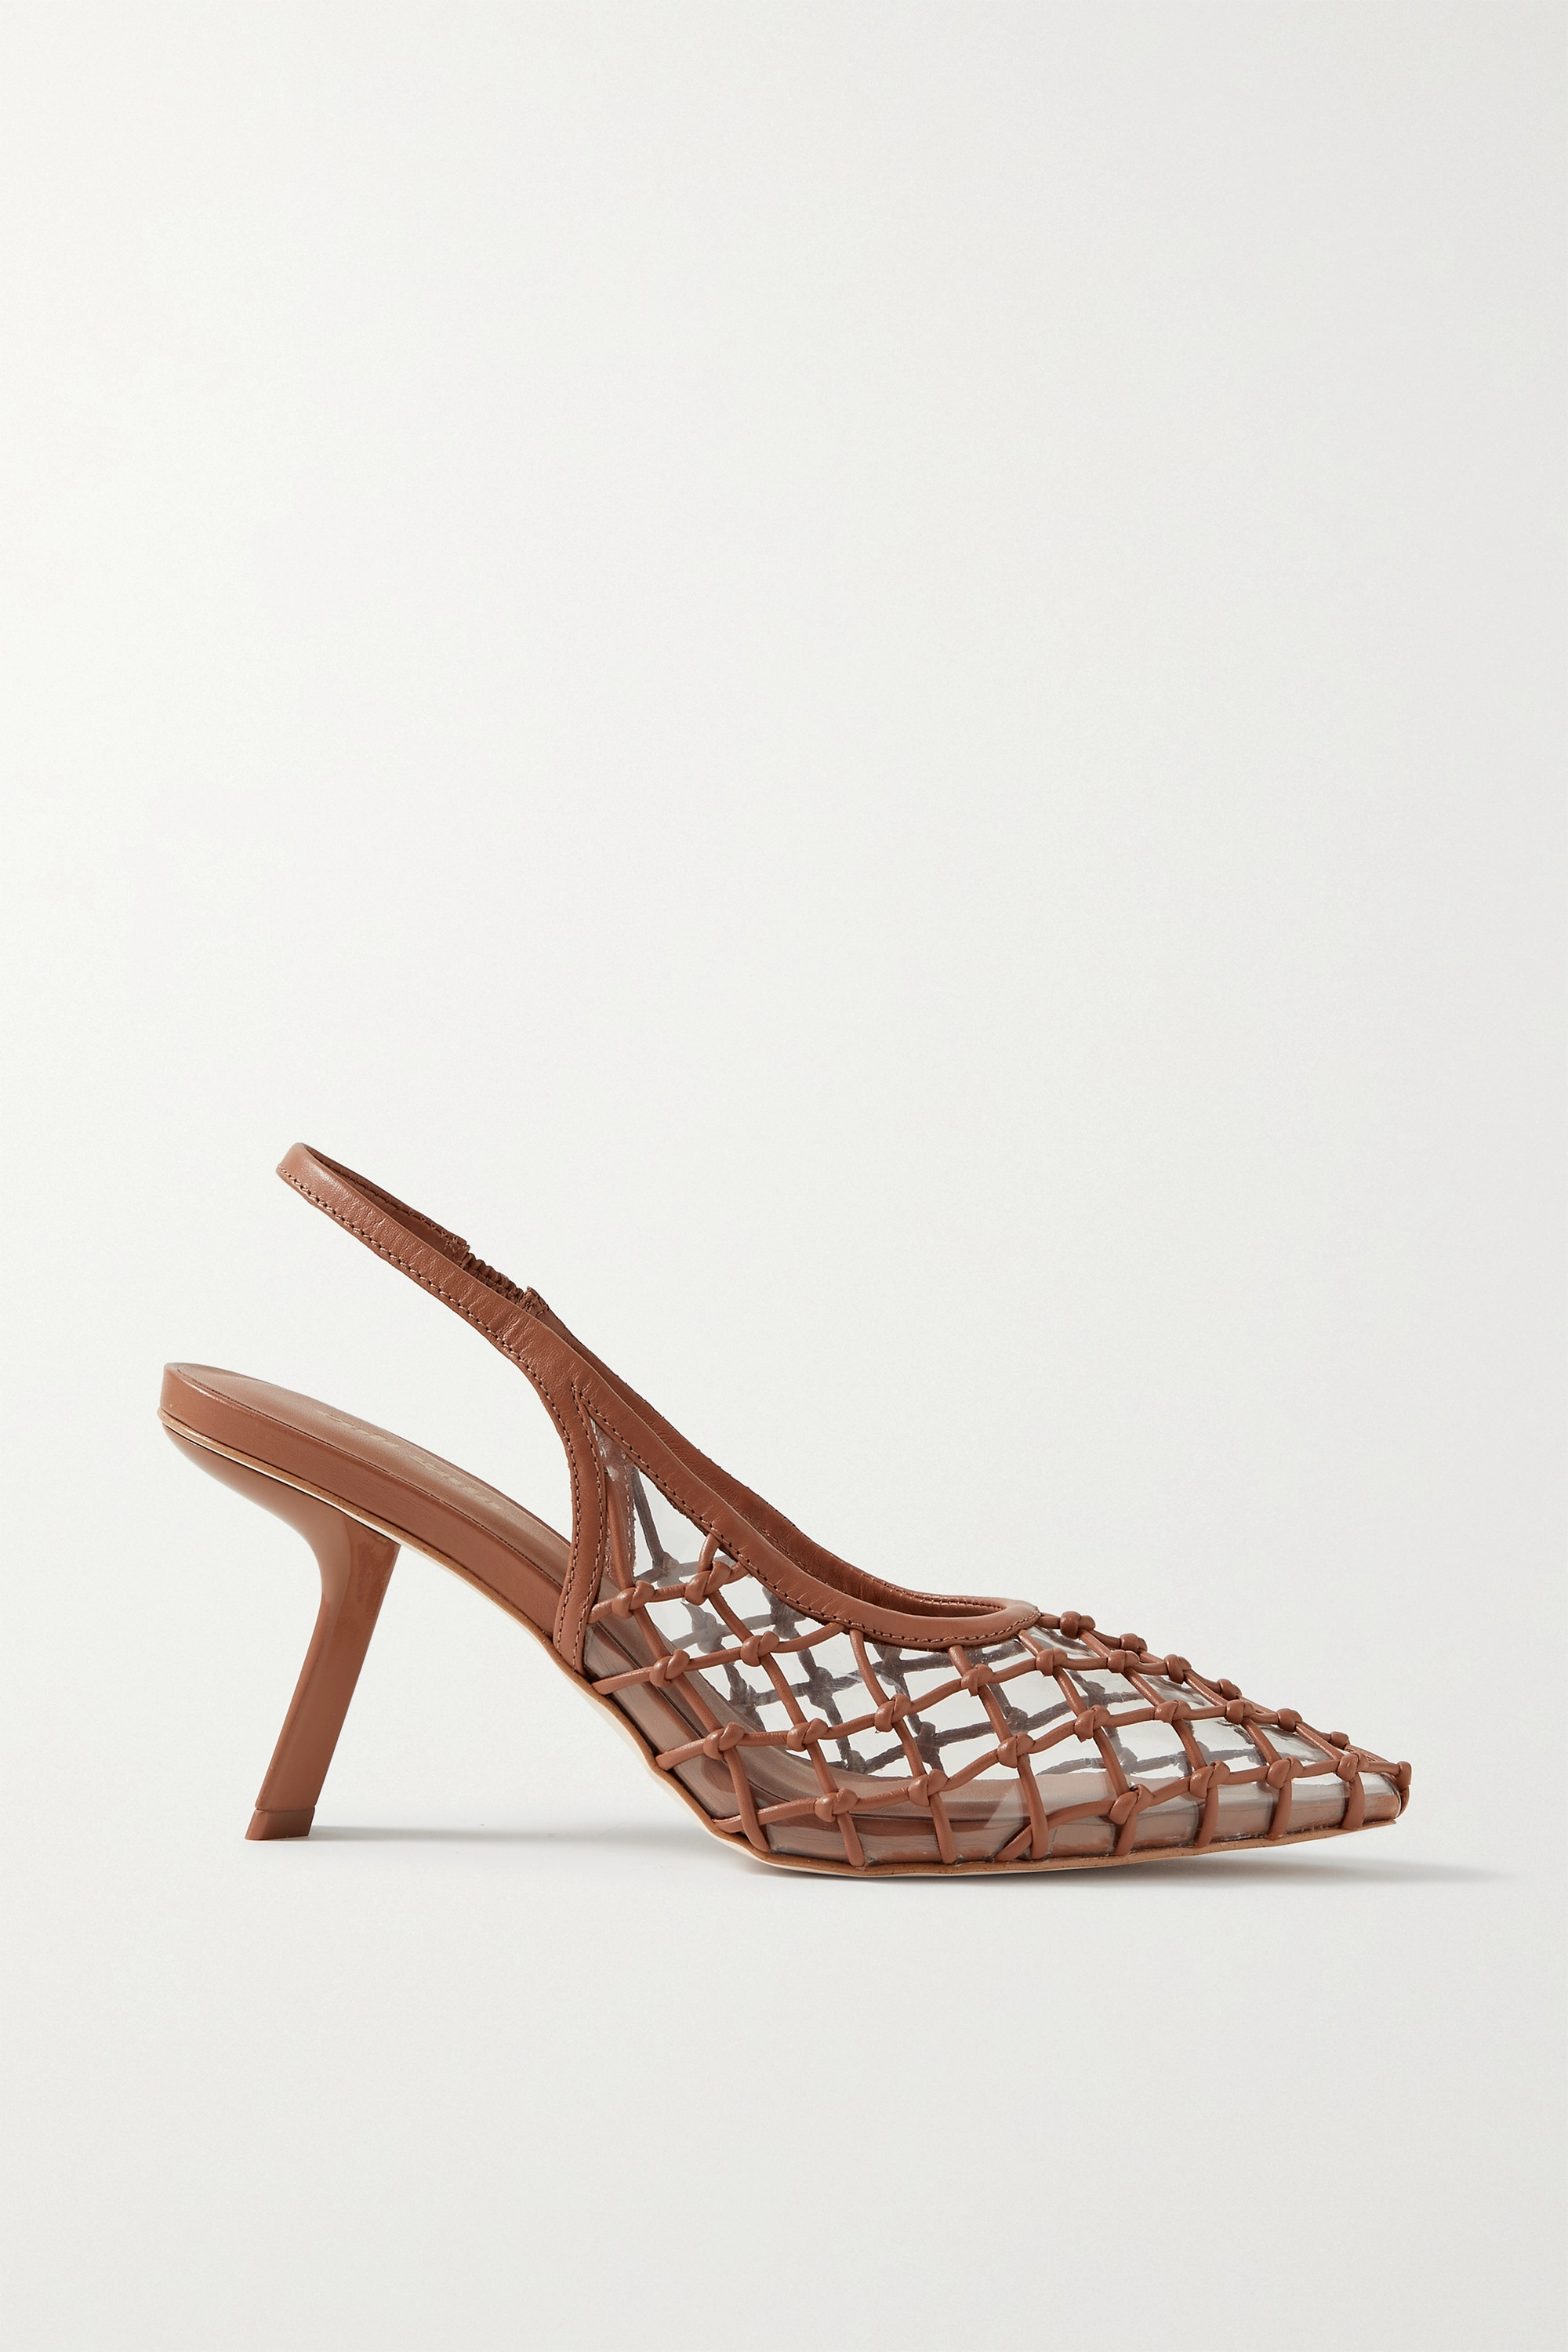 Cult Gaia Soray 75 knotted leather and PVC slingback pumps